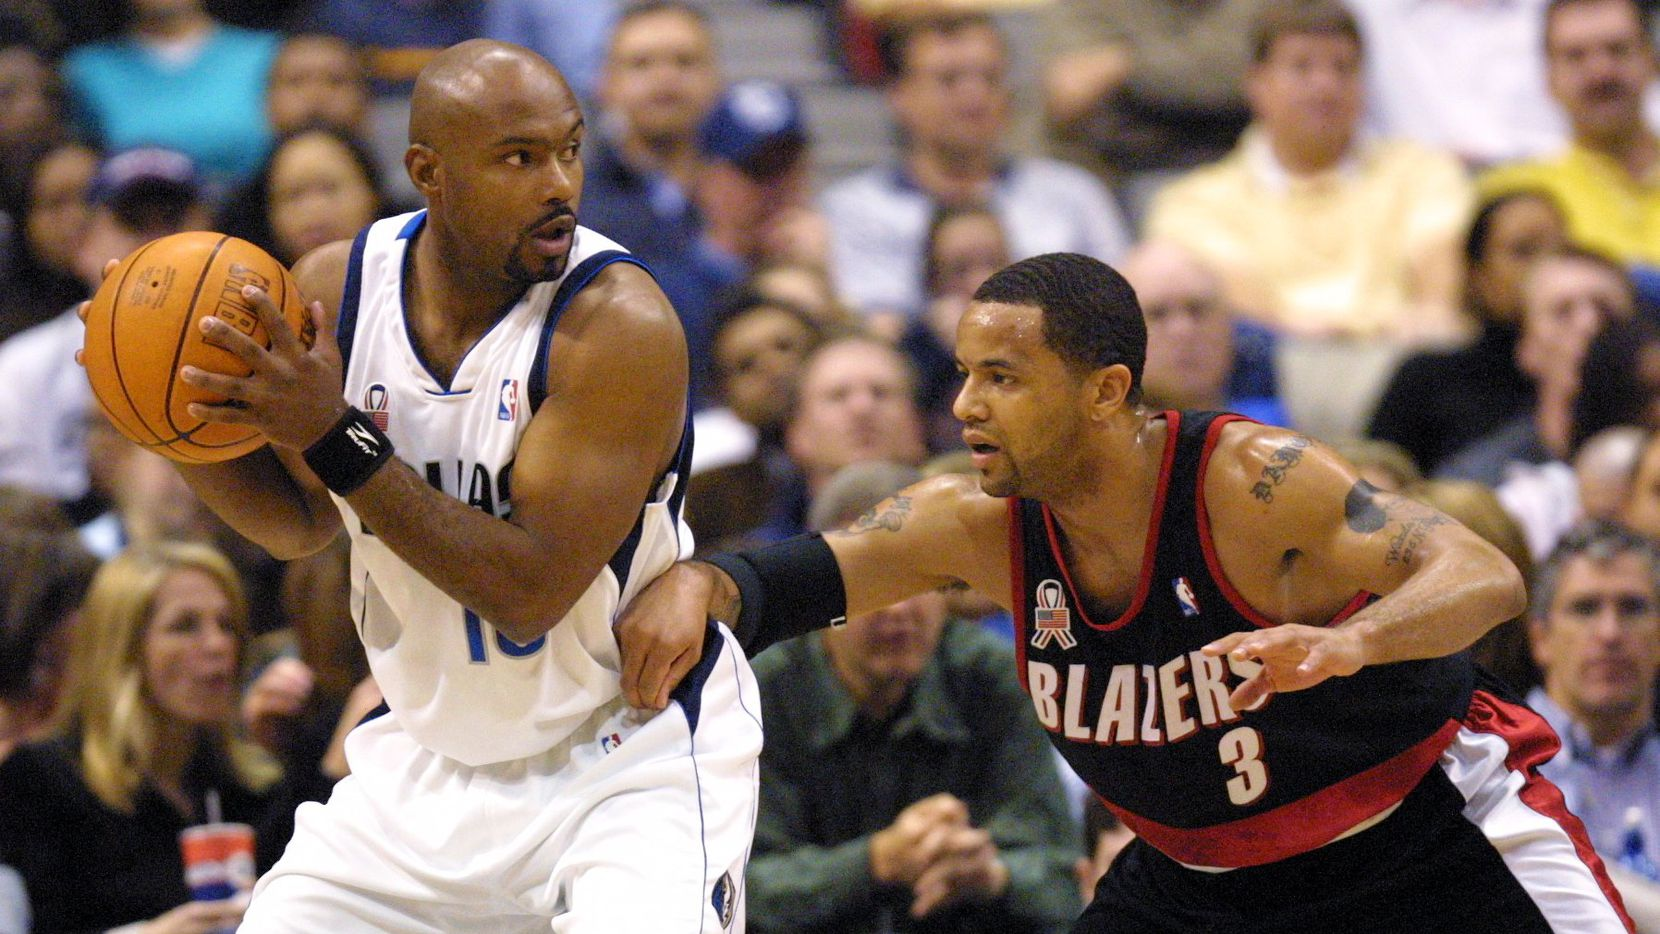 Tim hardaway gay comments shouldn't keep him